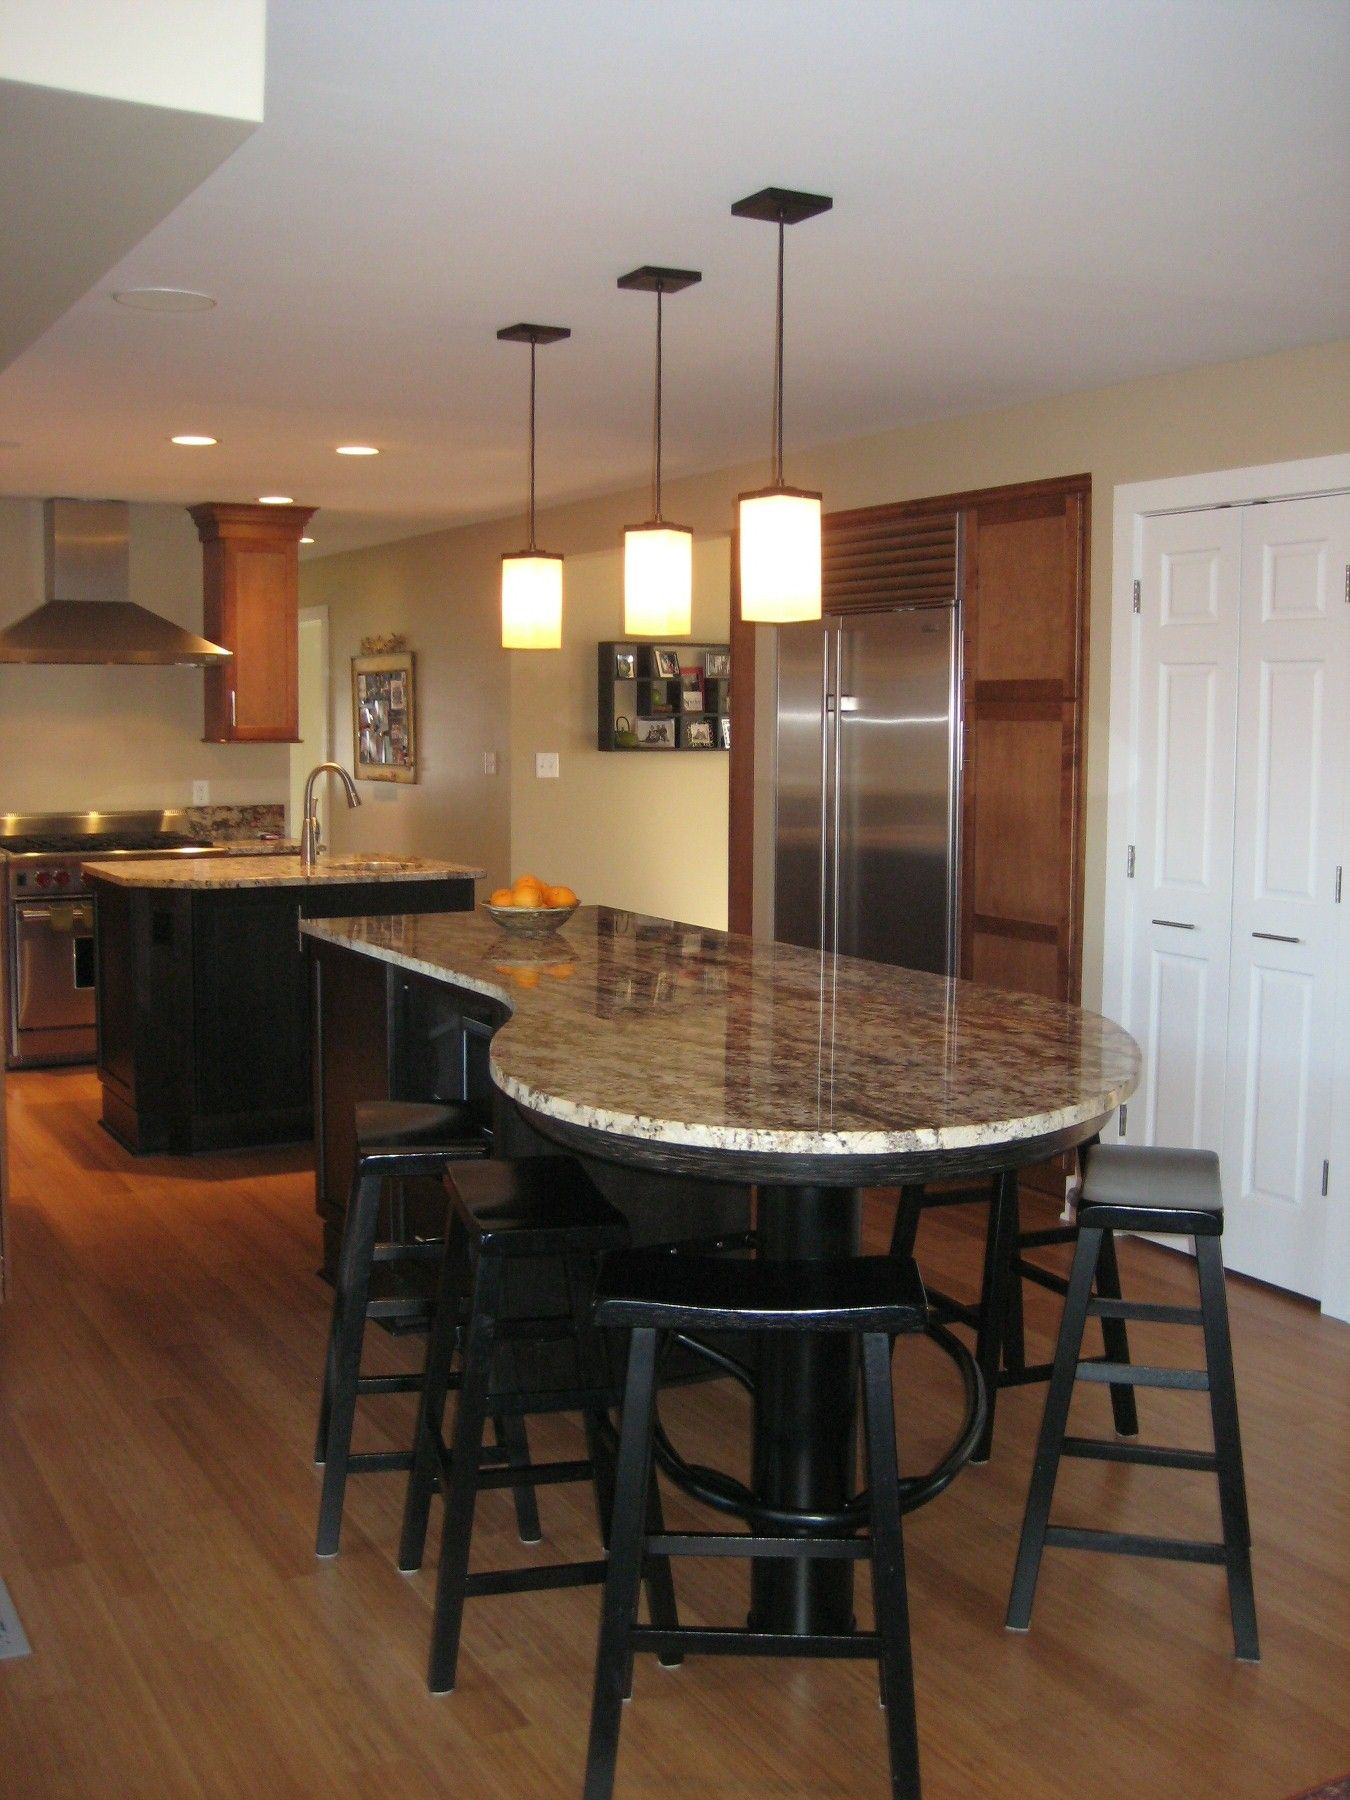 long narrow kitchen designs Posted on April 20, 2013 by